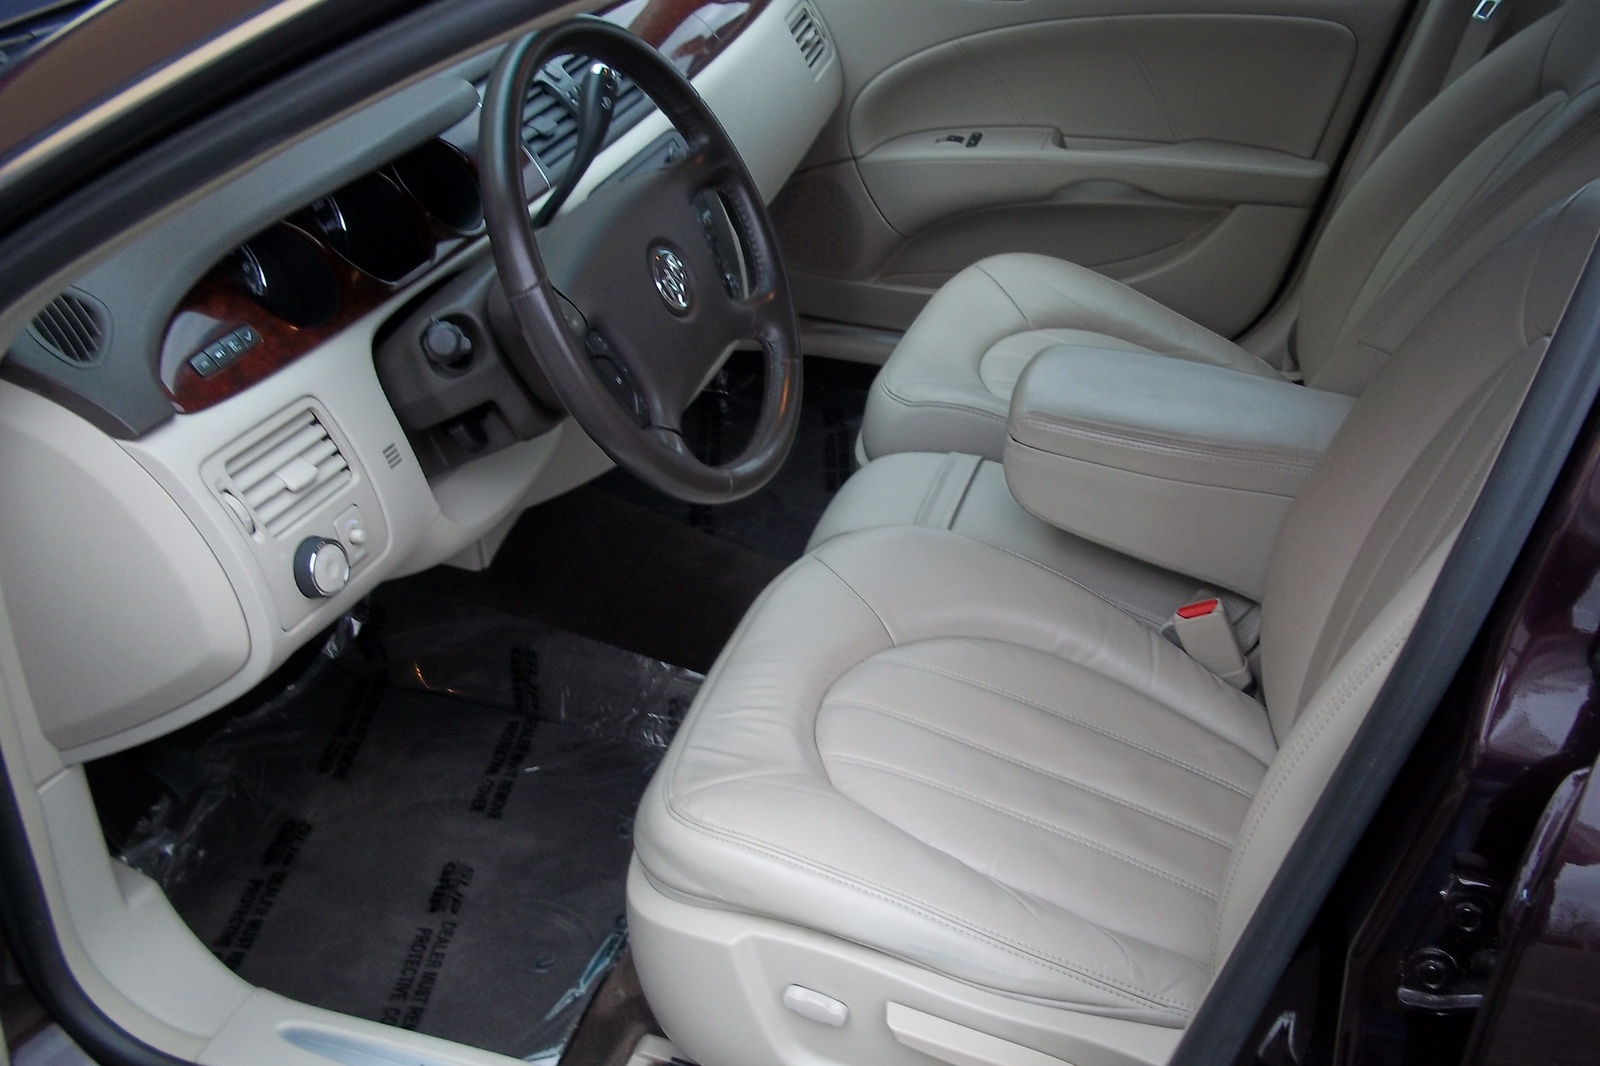 Buick Lucerne Pic on 2007 Buick Lucerne